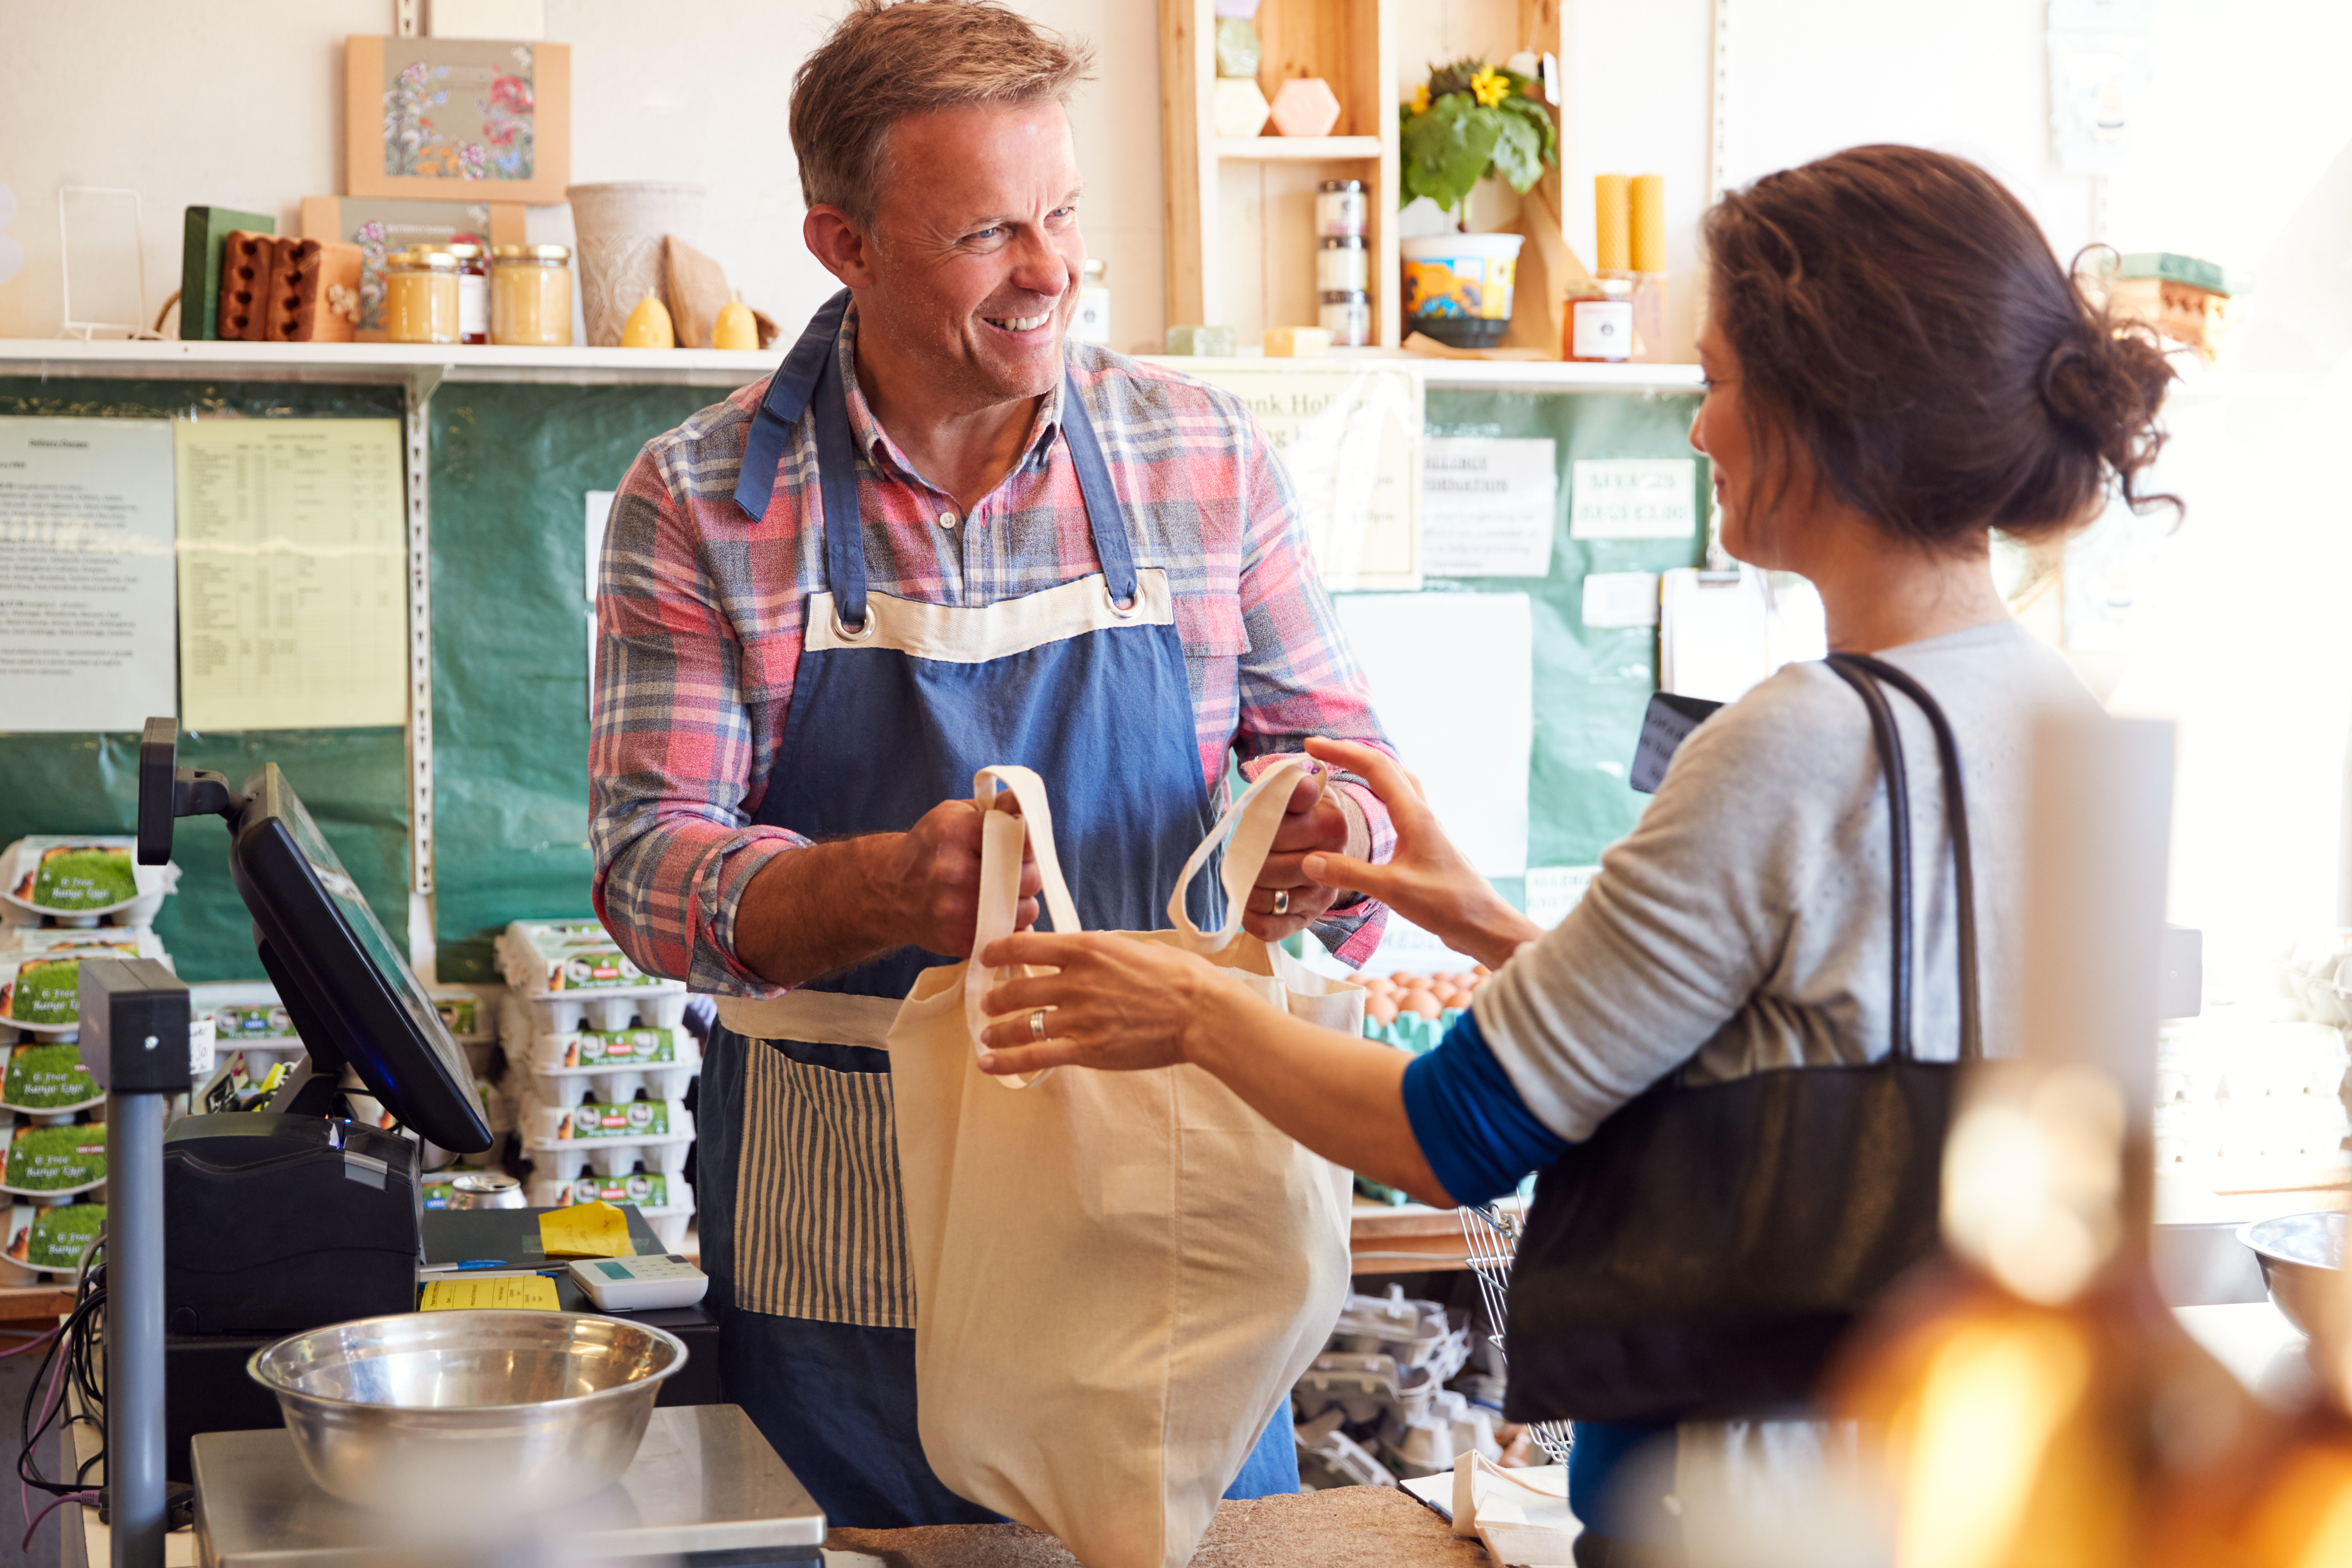 How U.S Shoppers Continue To Support Small Businesses